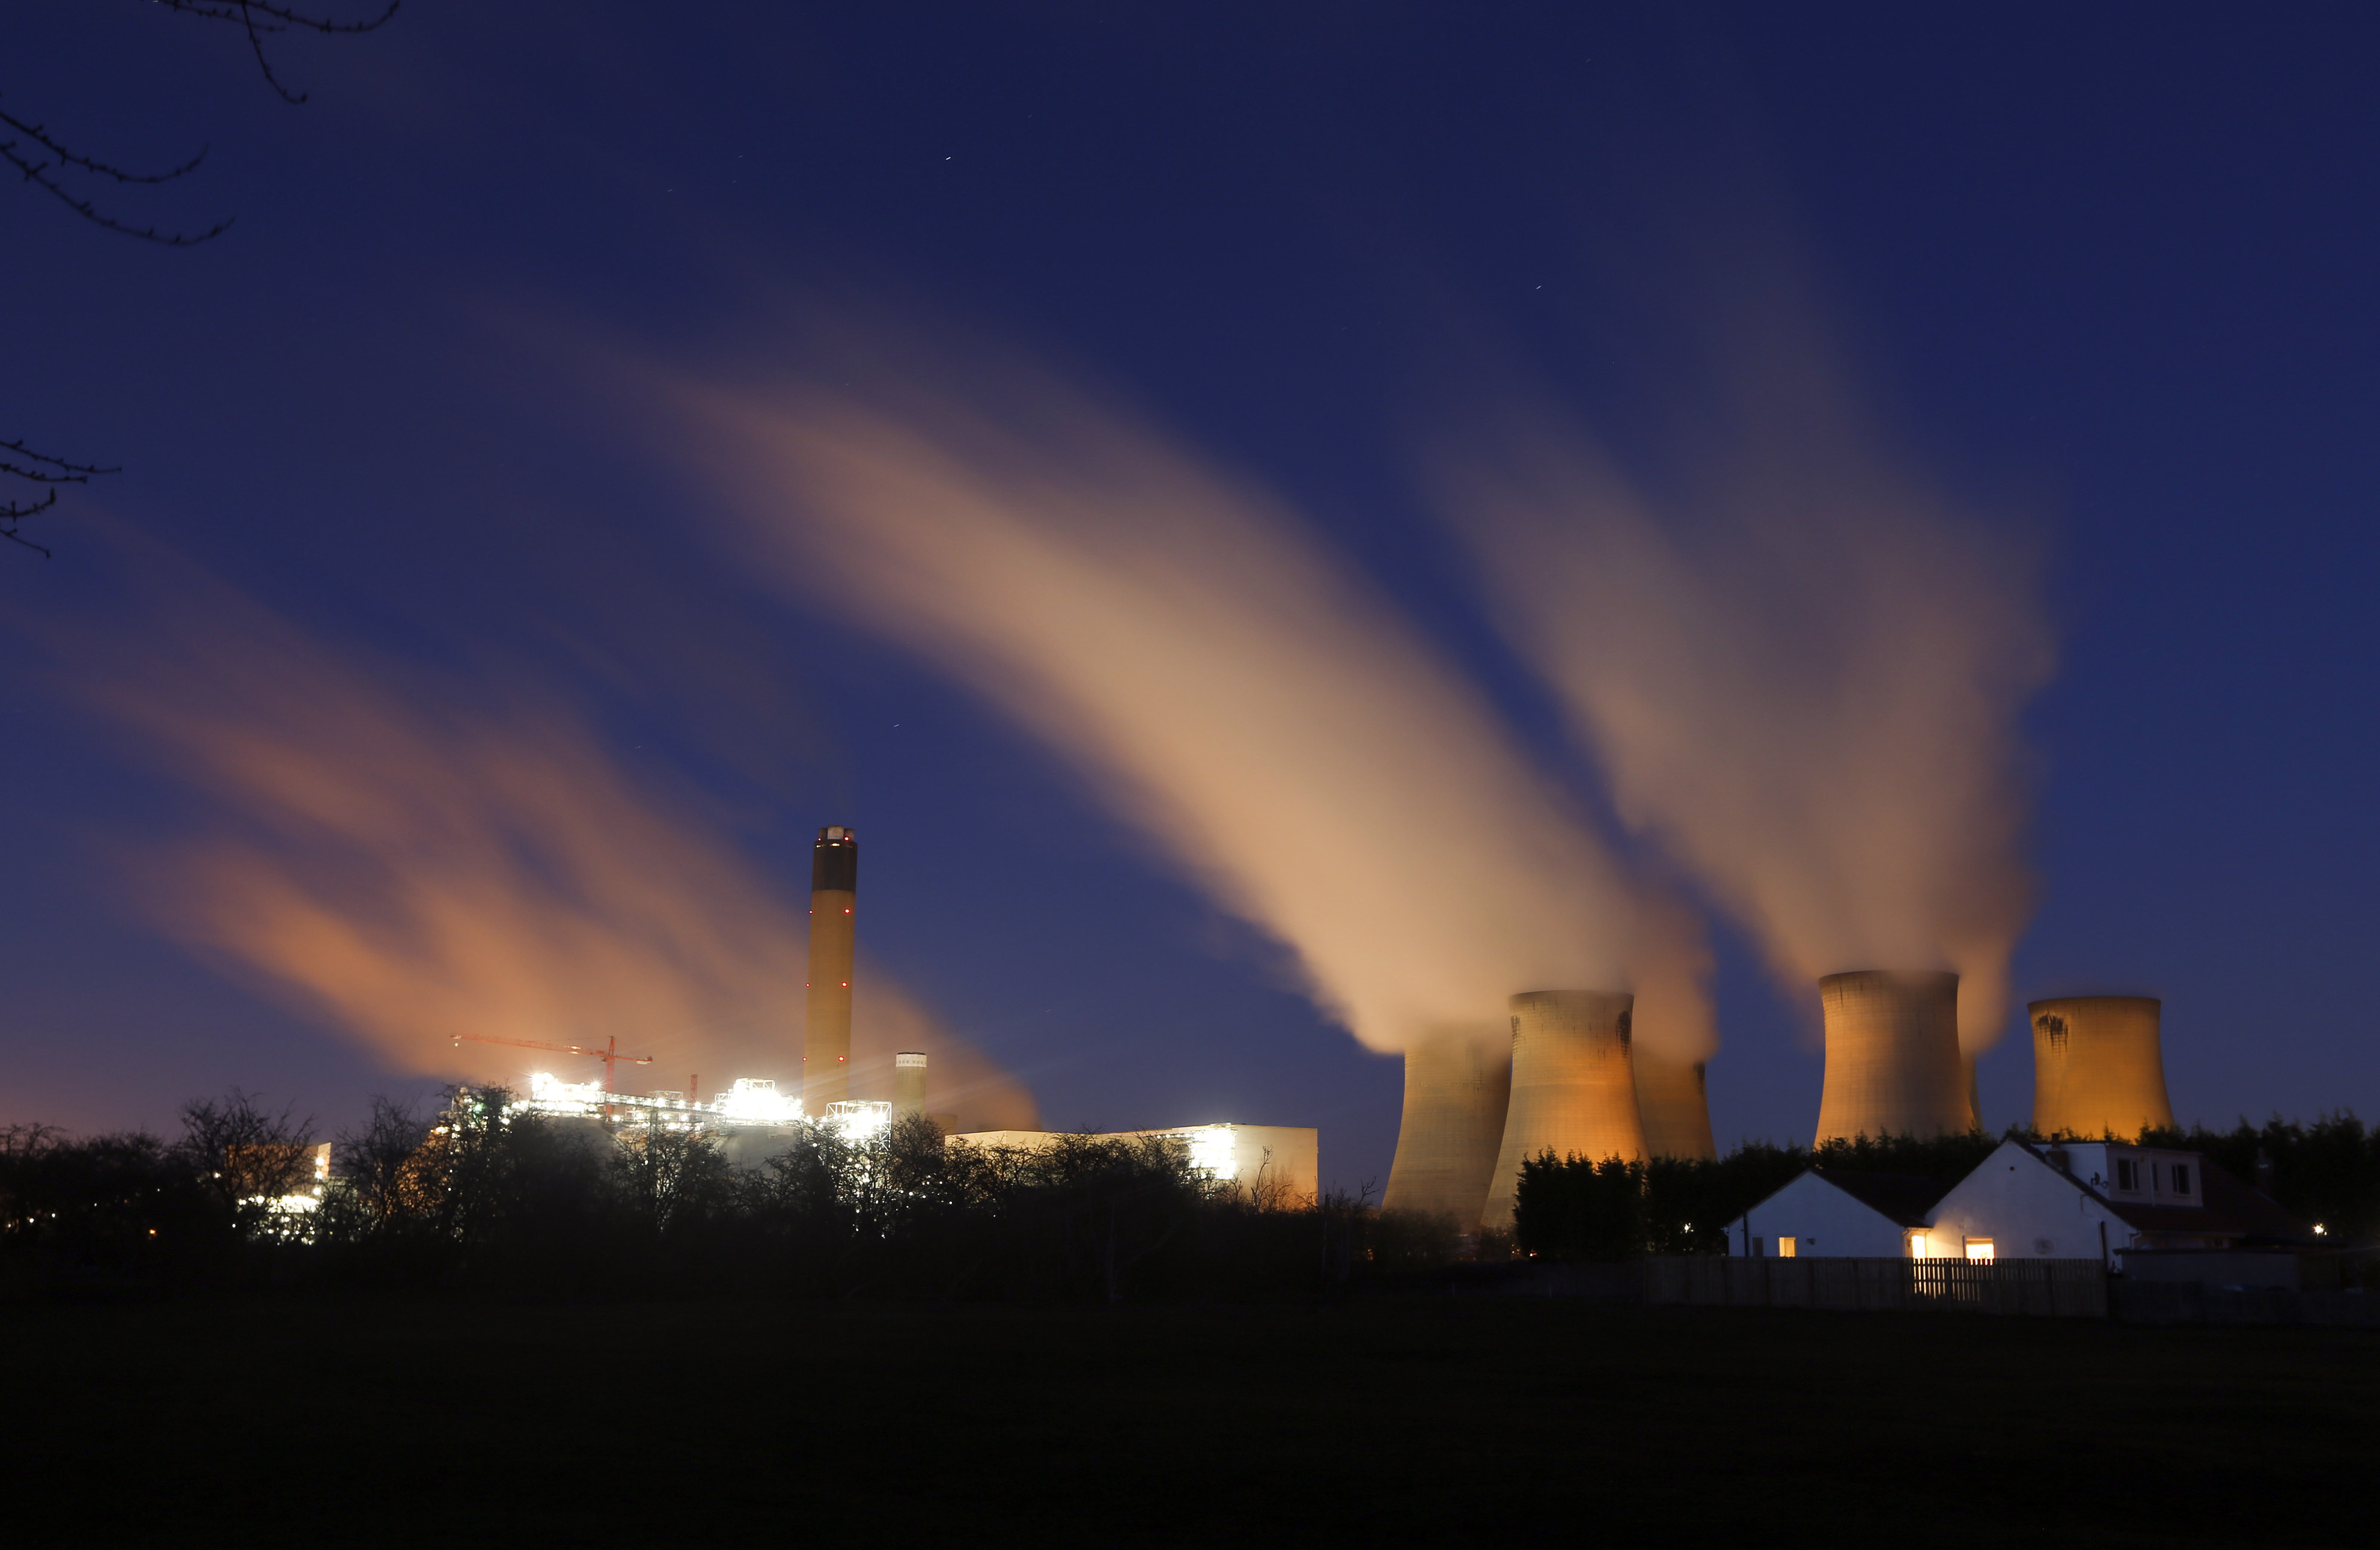 Vapour rises from cooling towers at Drax Power Station, operated by Drax Group Plc, at night in Selby, U.K. Photographer: Chris Ratcliffe/Bloomberg